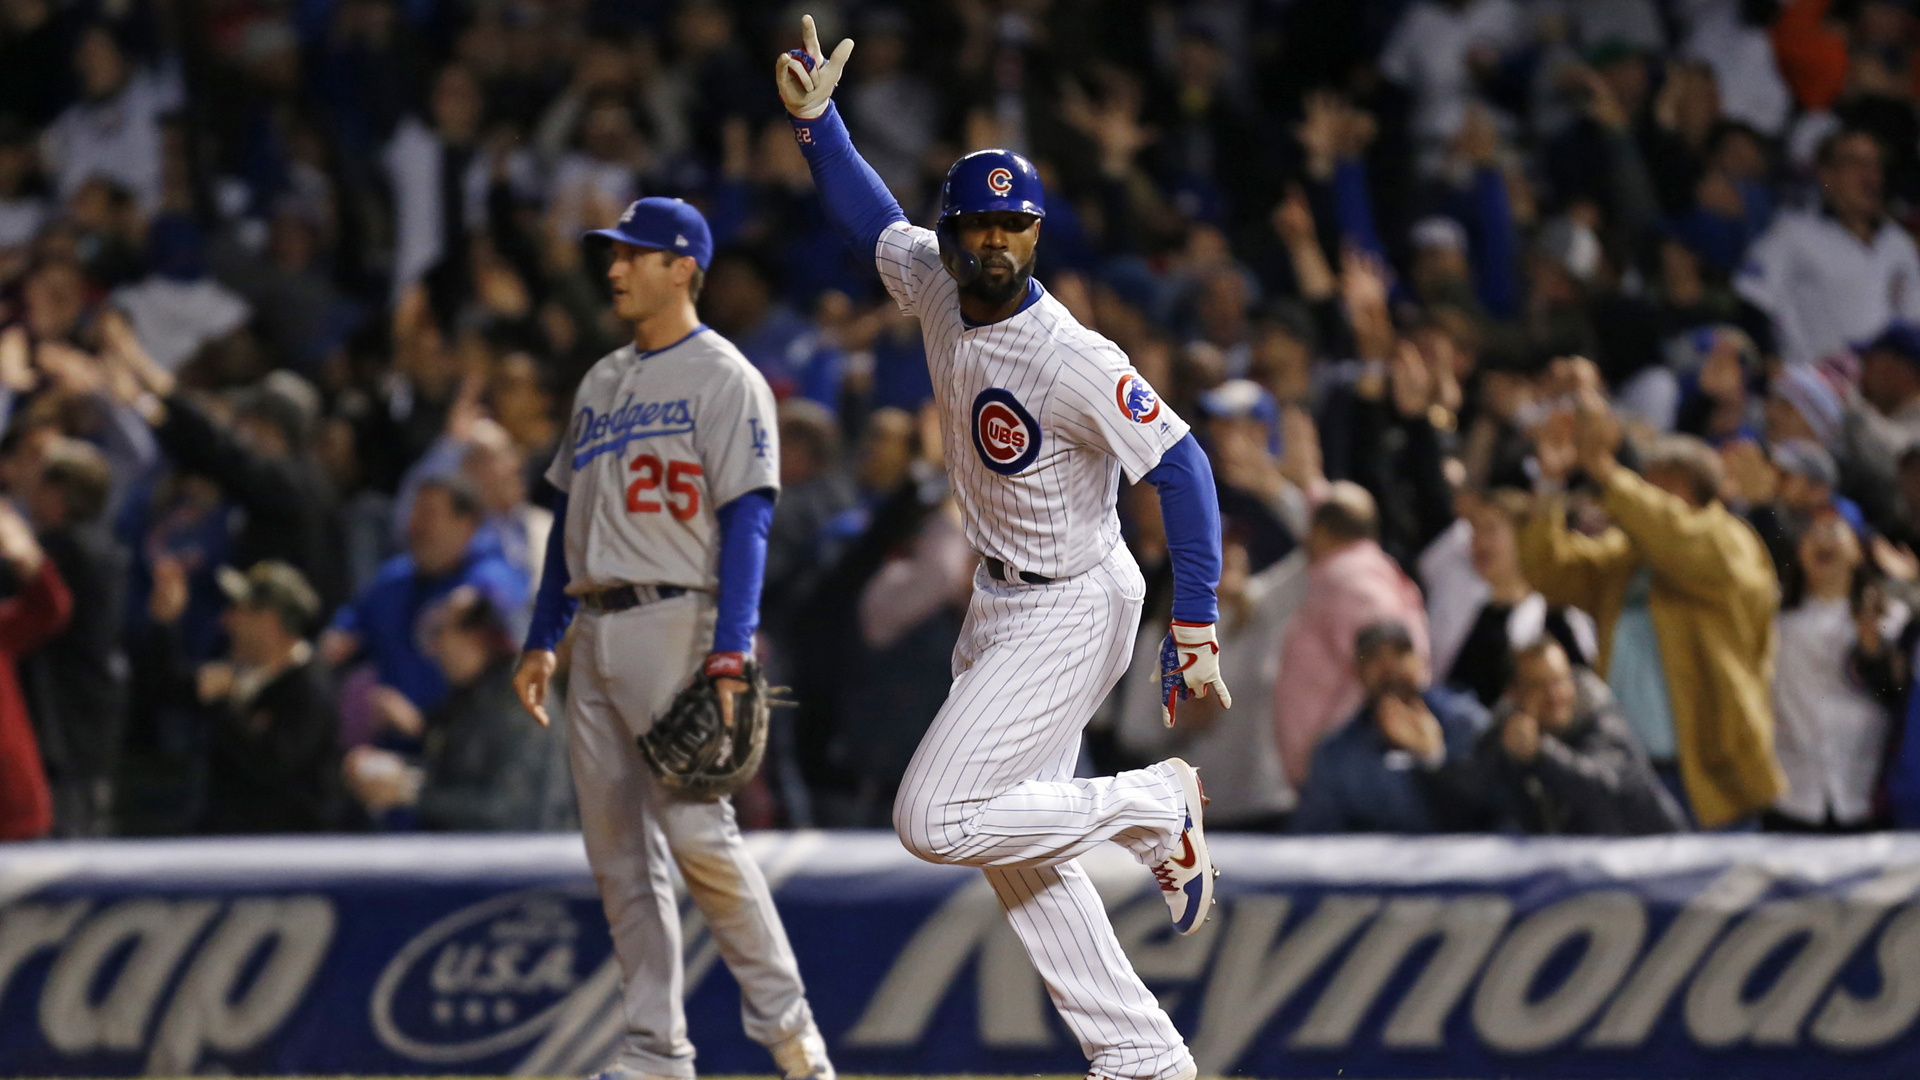 Jason Heyward #22 of the Chicago Cubs rounds the bases following his three run home run against the Los Angeles Dodgers during the sixth inning of a game at Wrigley Field on April 24, 2019 in Chicago, Illinois. (Credit: Nuccio DiNuzzo/Getty Images)